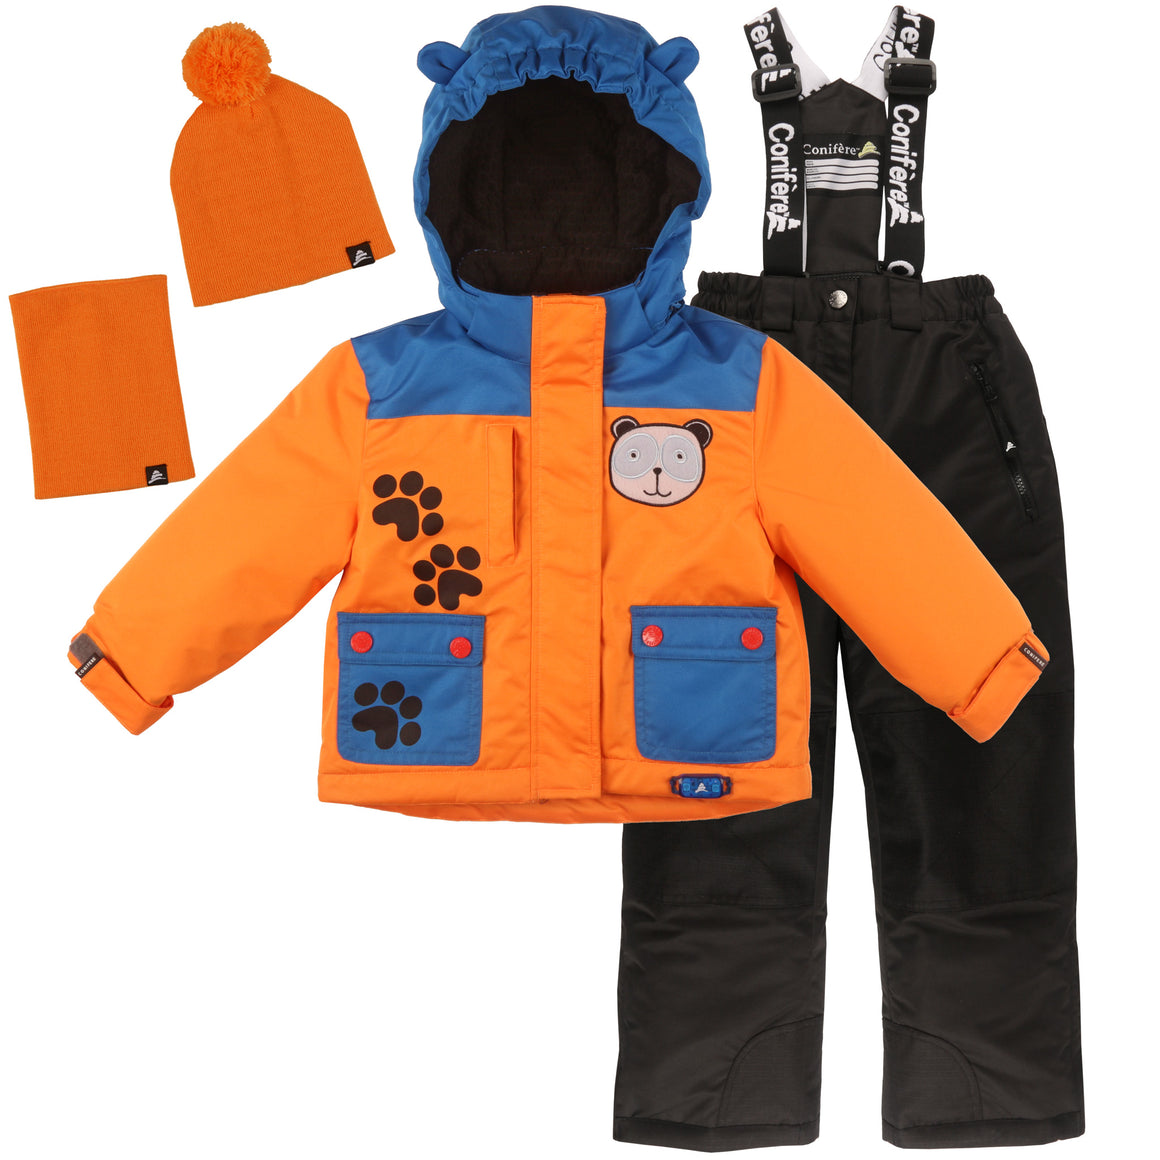 Boys's Snowsuit Set